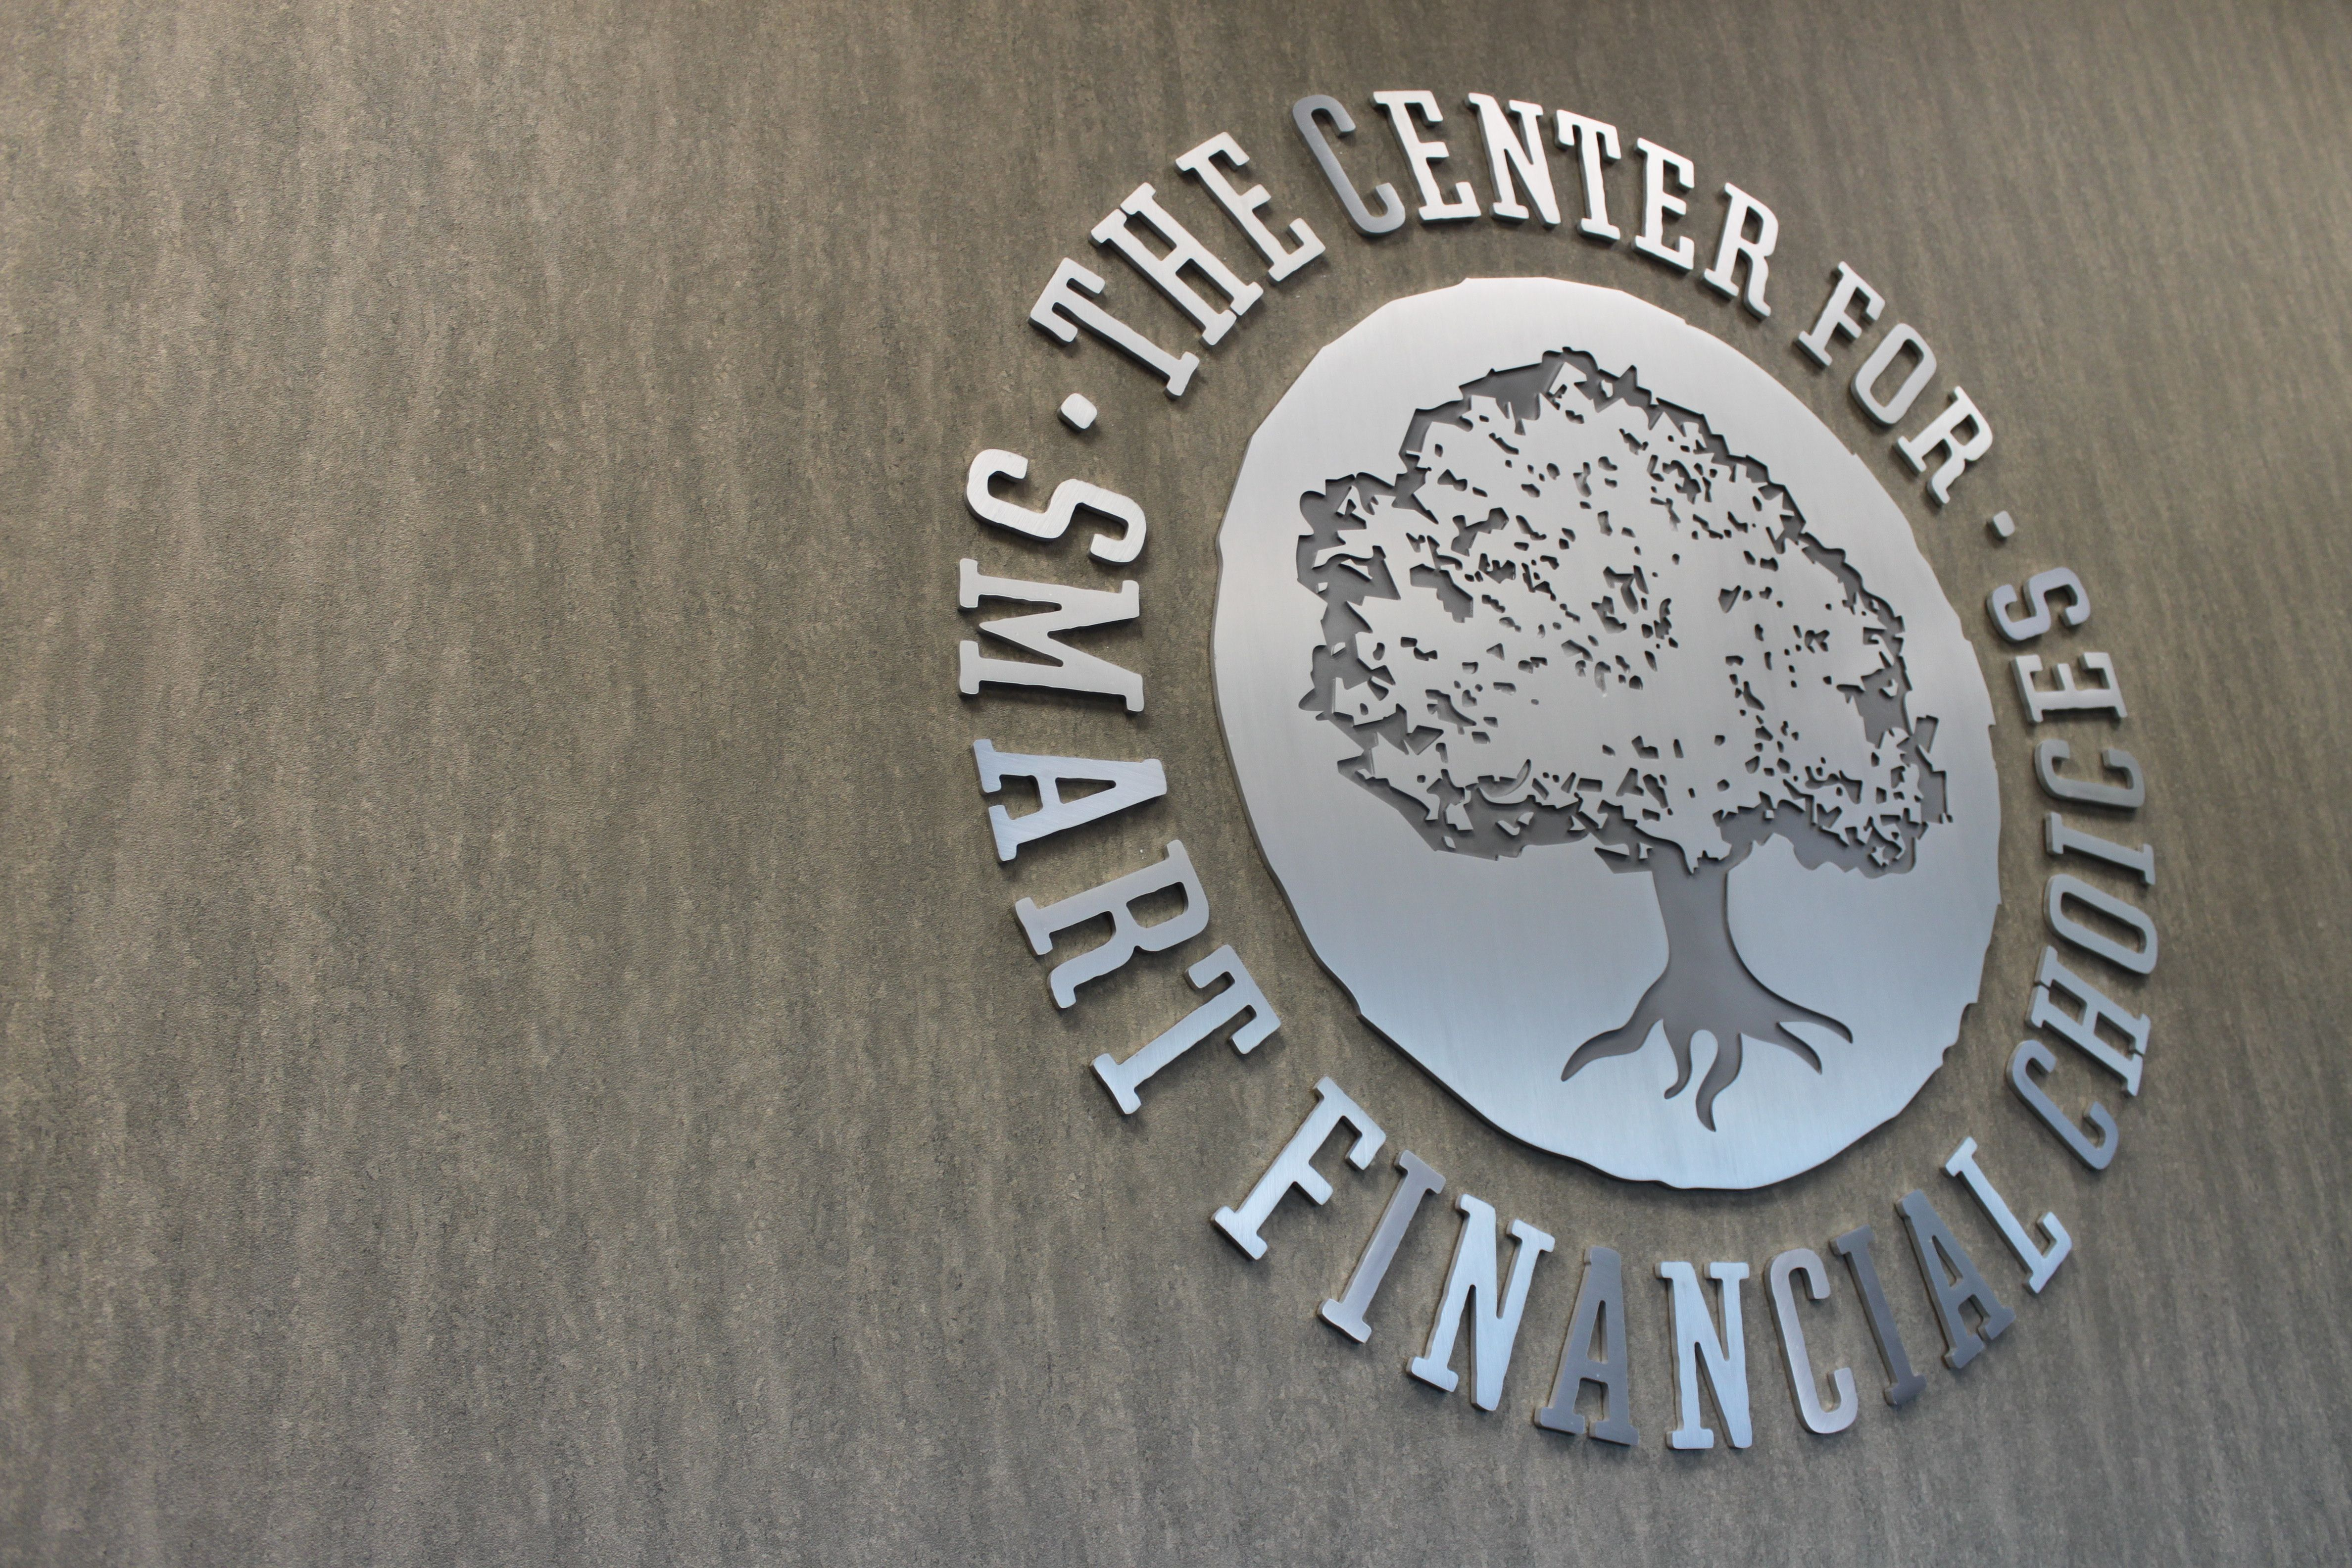 Center for Smart Financial Choices HQ Signage